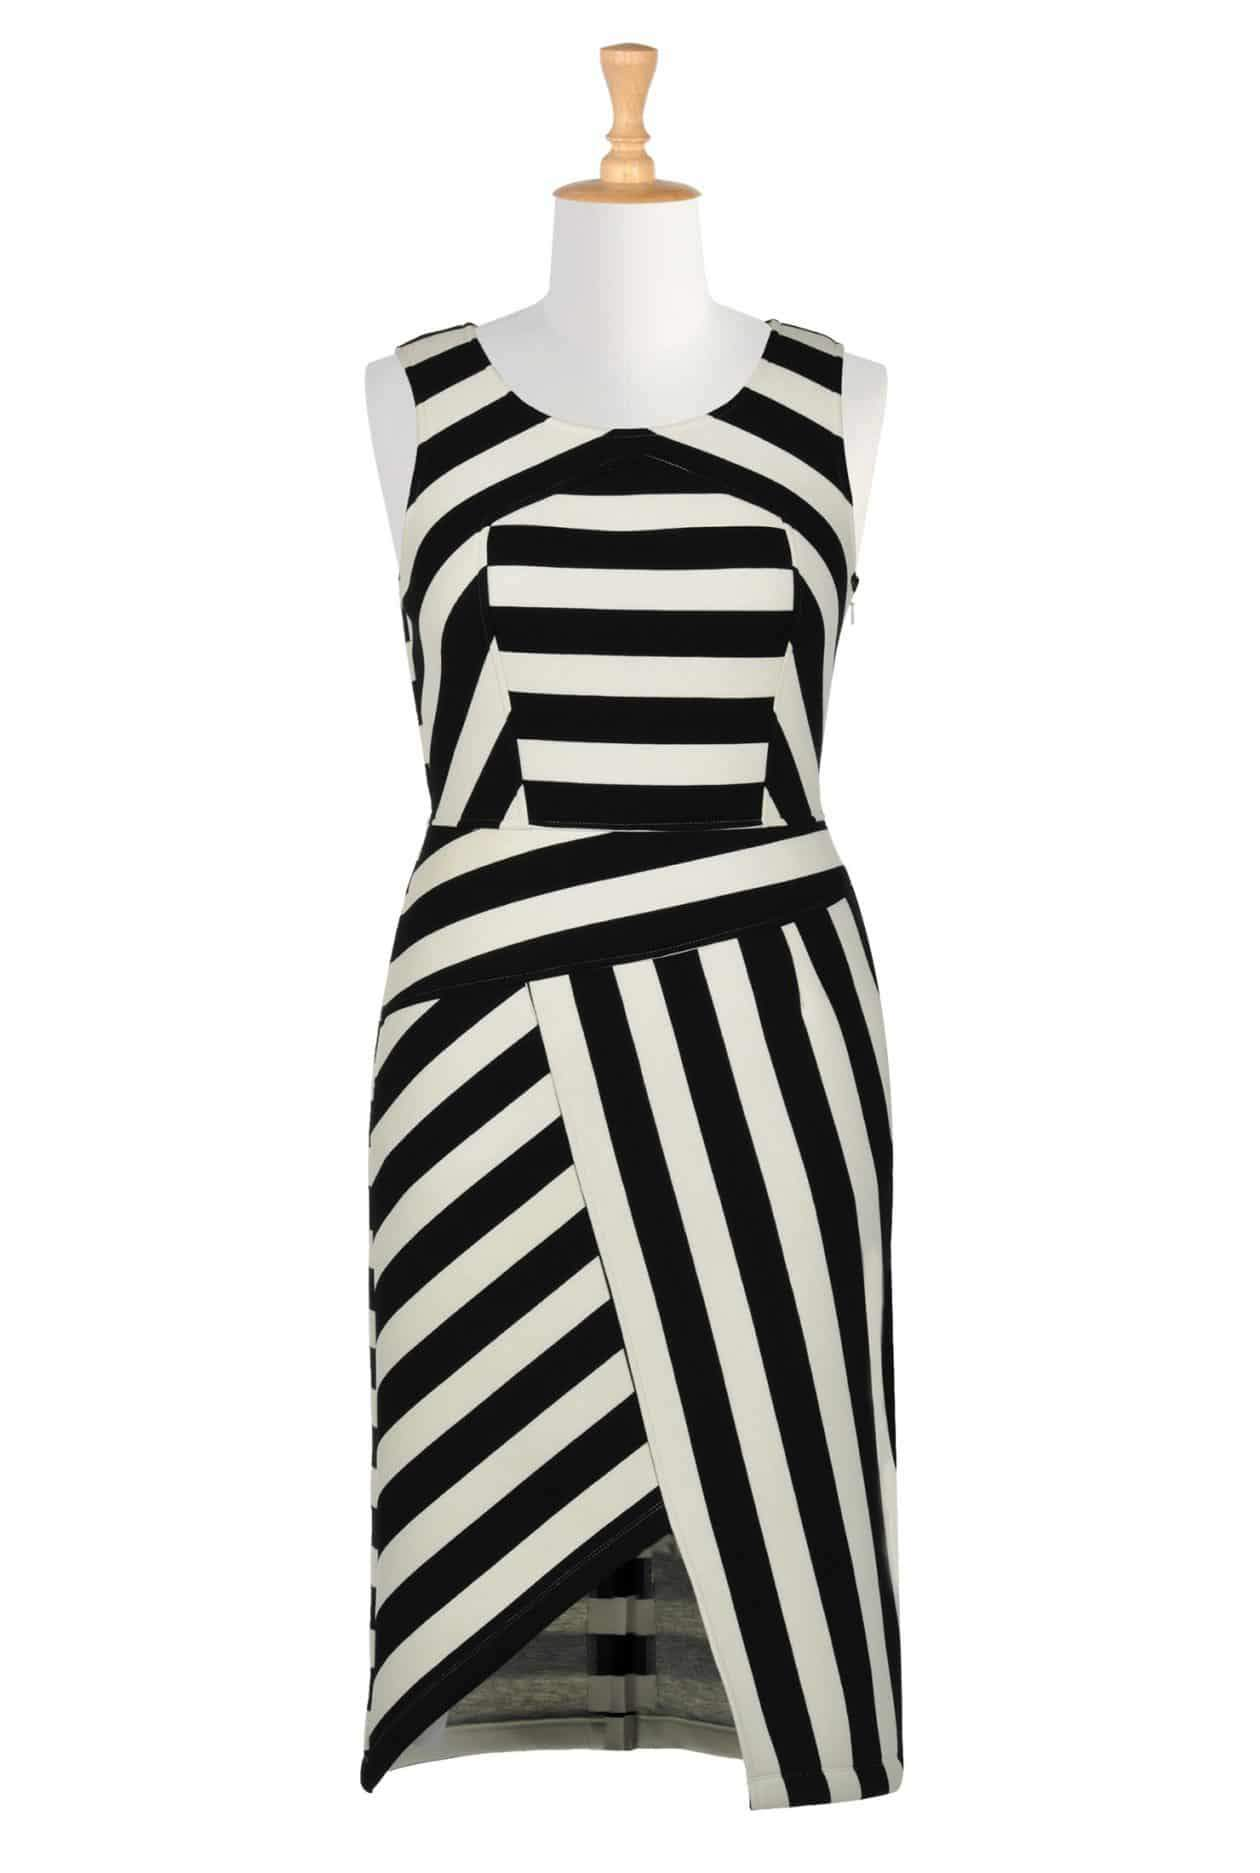 Asymmetrical stripe bonded knit dress via TheCurvyFashionista.com